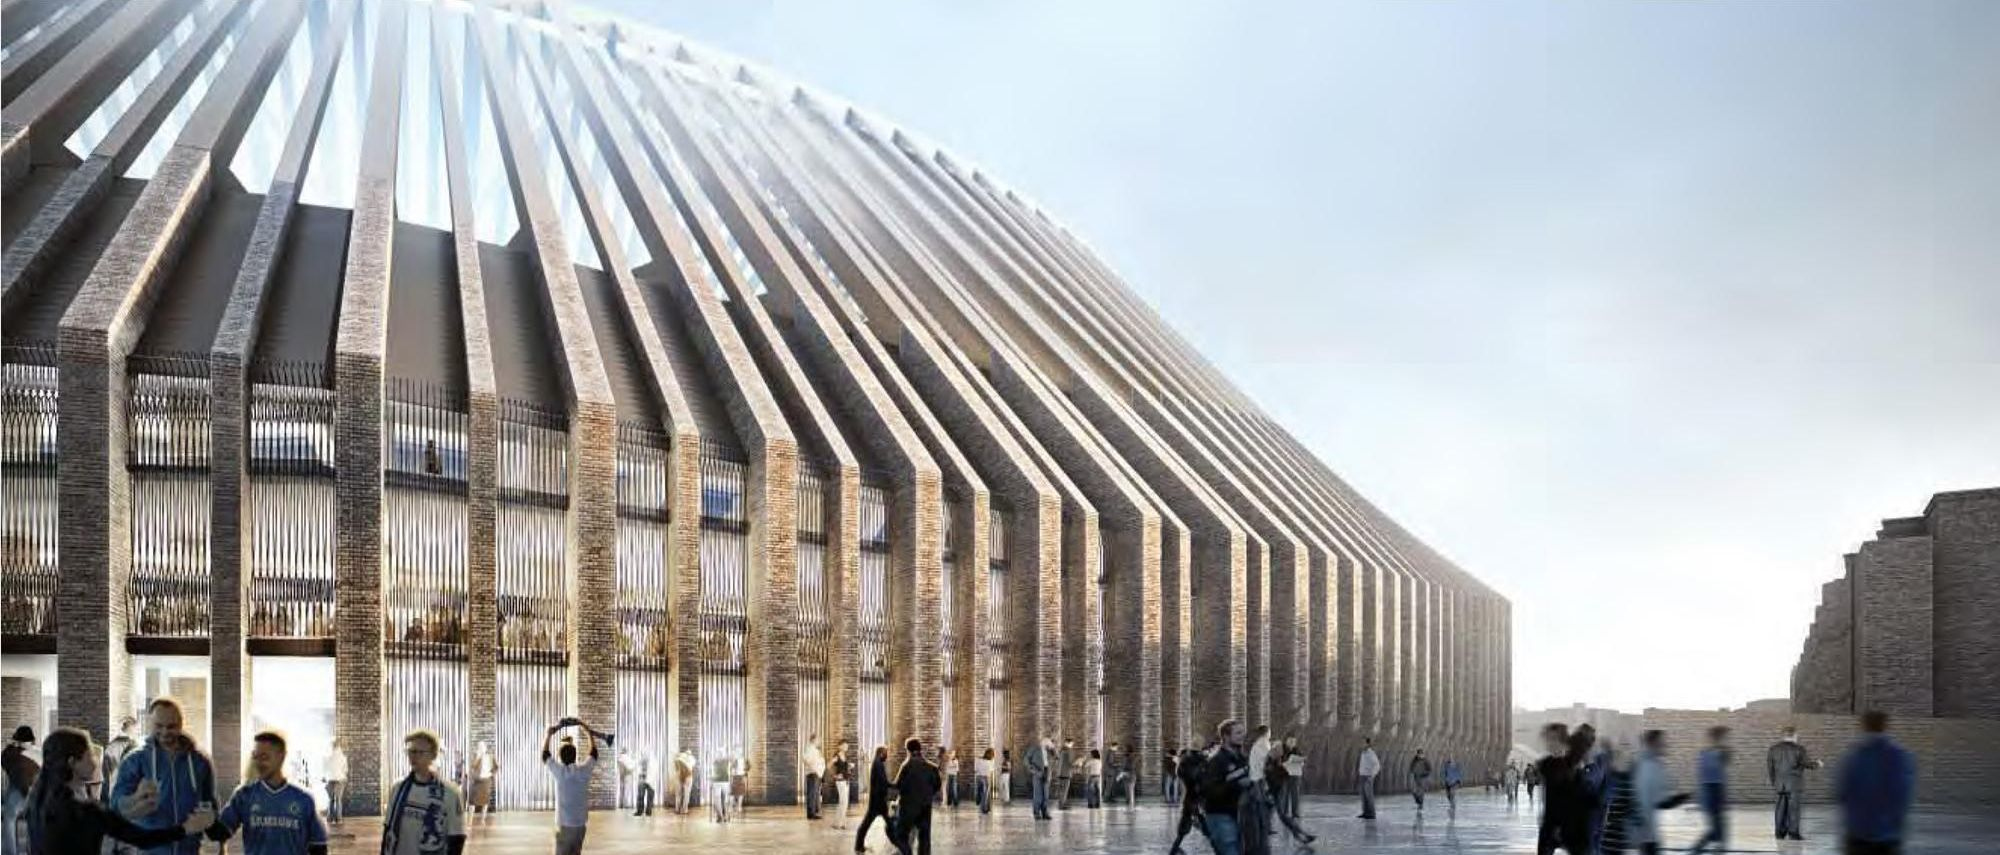 Herzog-de-Meuron-.-New-Chelsea-FC-Stadium-.-London-11.jpg